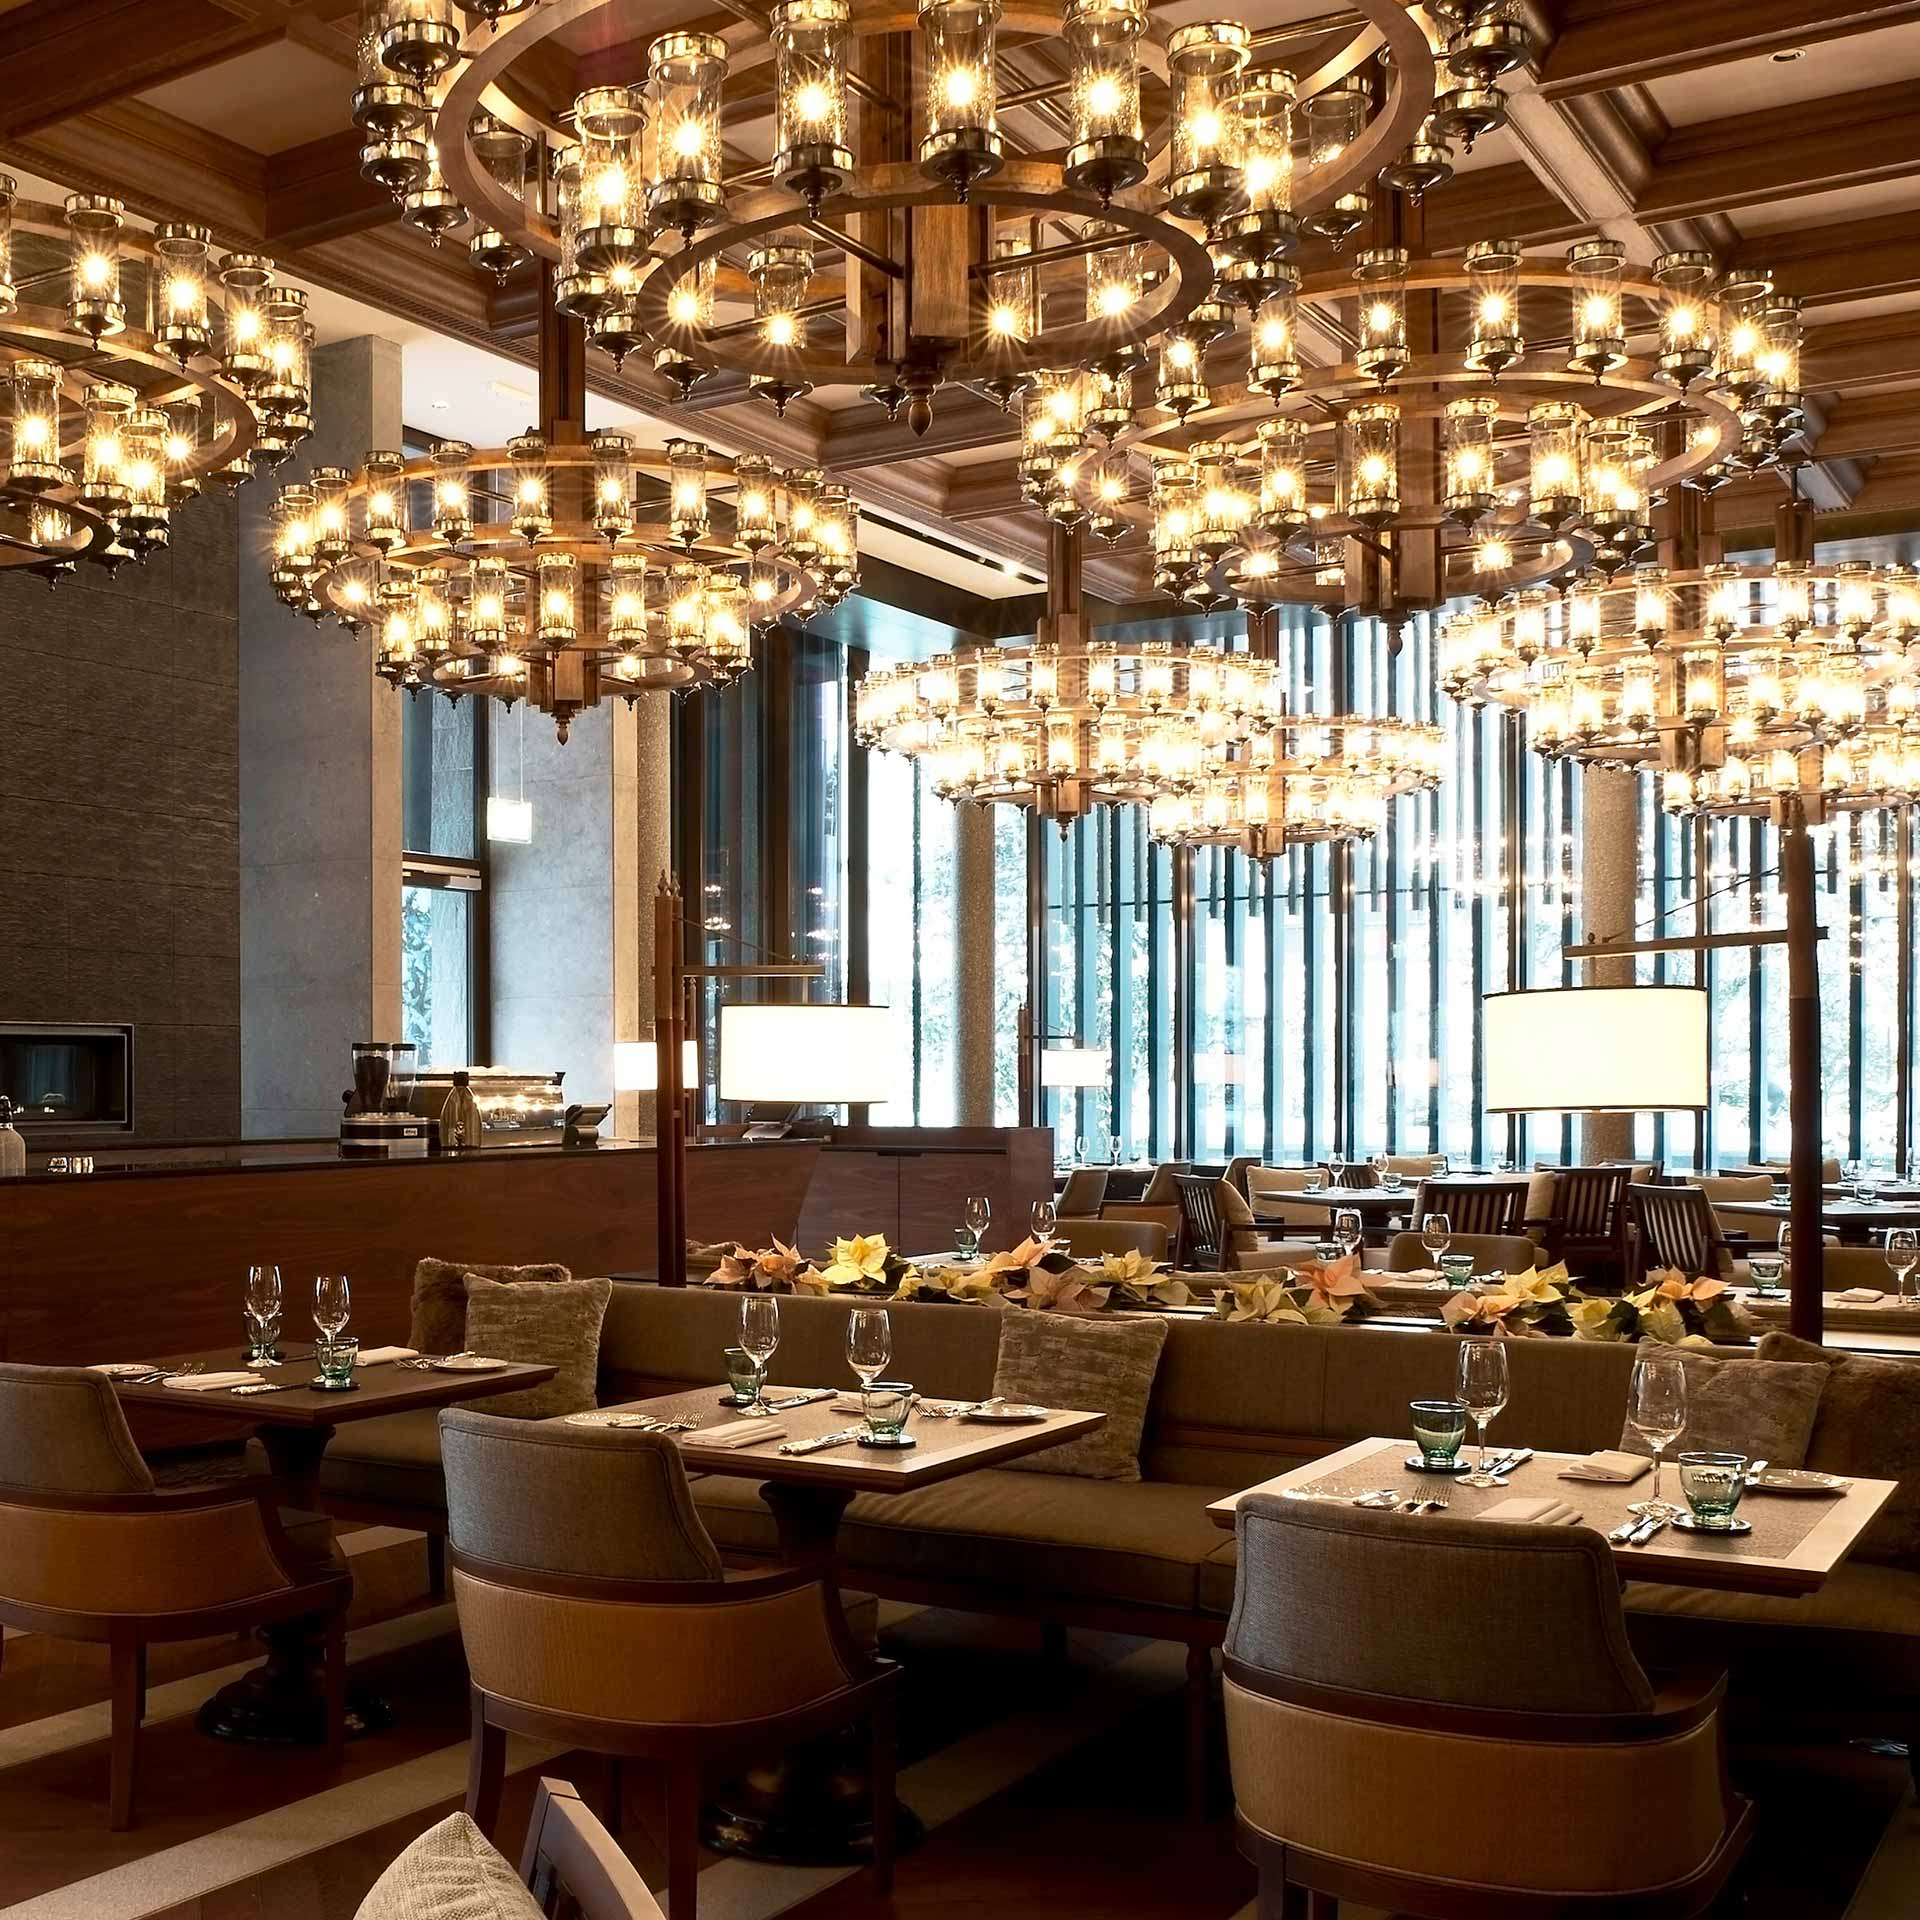 The Restaurant at The Chedi Andermatt | Luxury hotel marketing | General Hotel Management